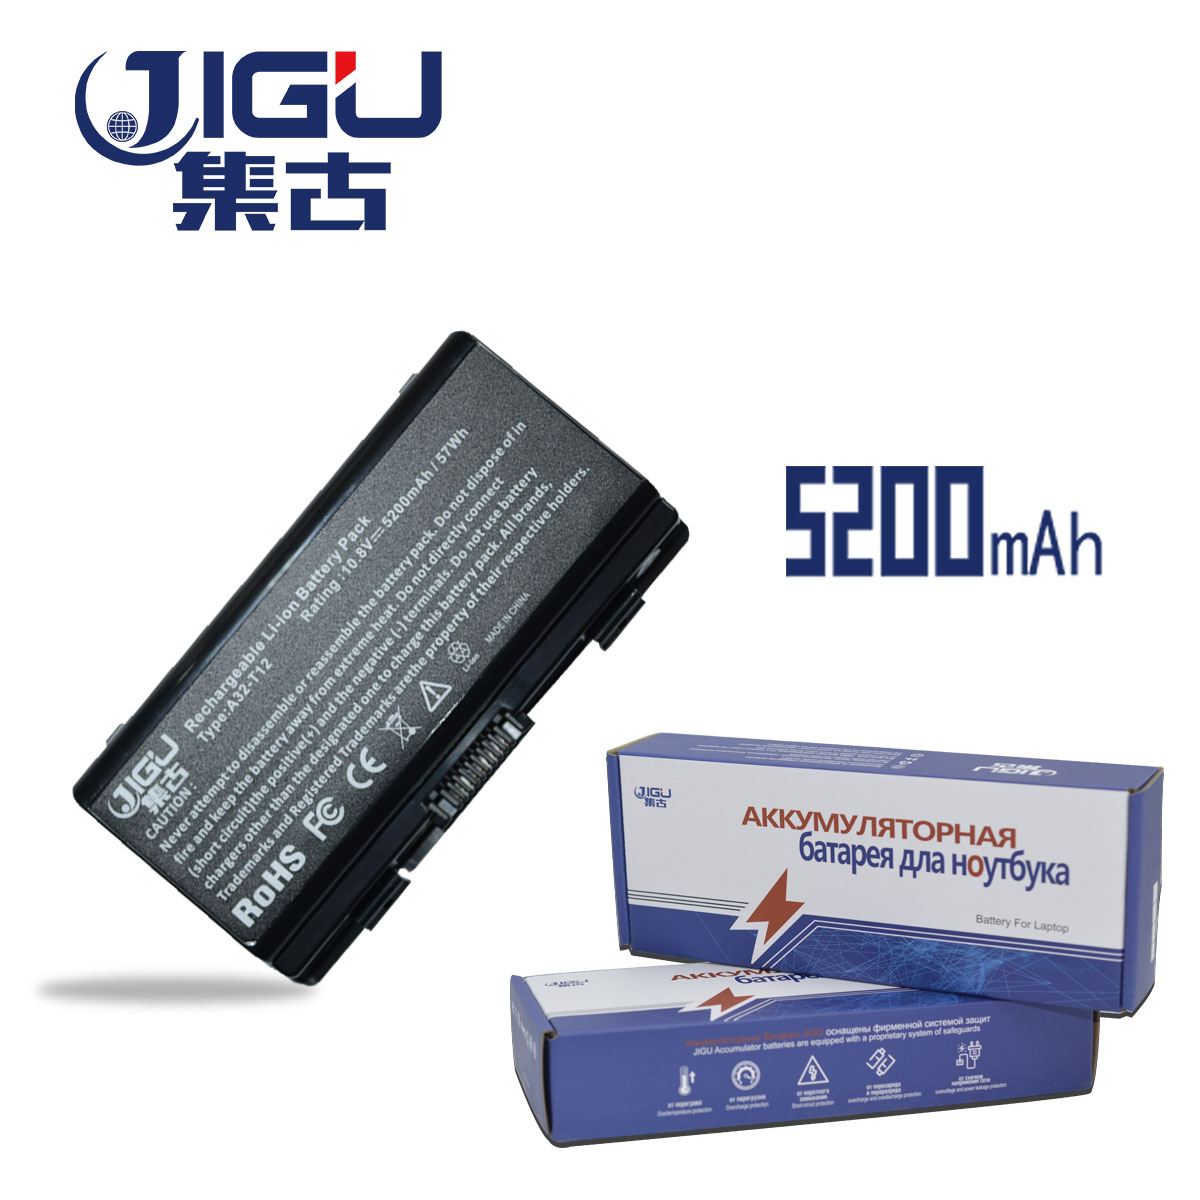 JIGU [Special Price] New Laptop Battery For Asus X51H X51L X51R X51RL T12b T12C T12Er T12Jg T12Mg A32-X51 A32-T12 A32-T12J цена и фото